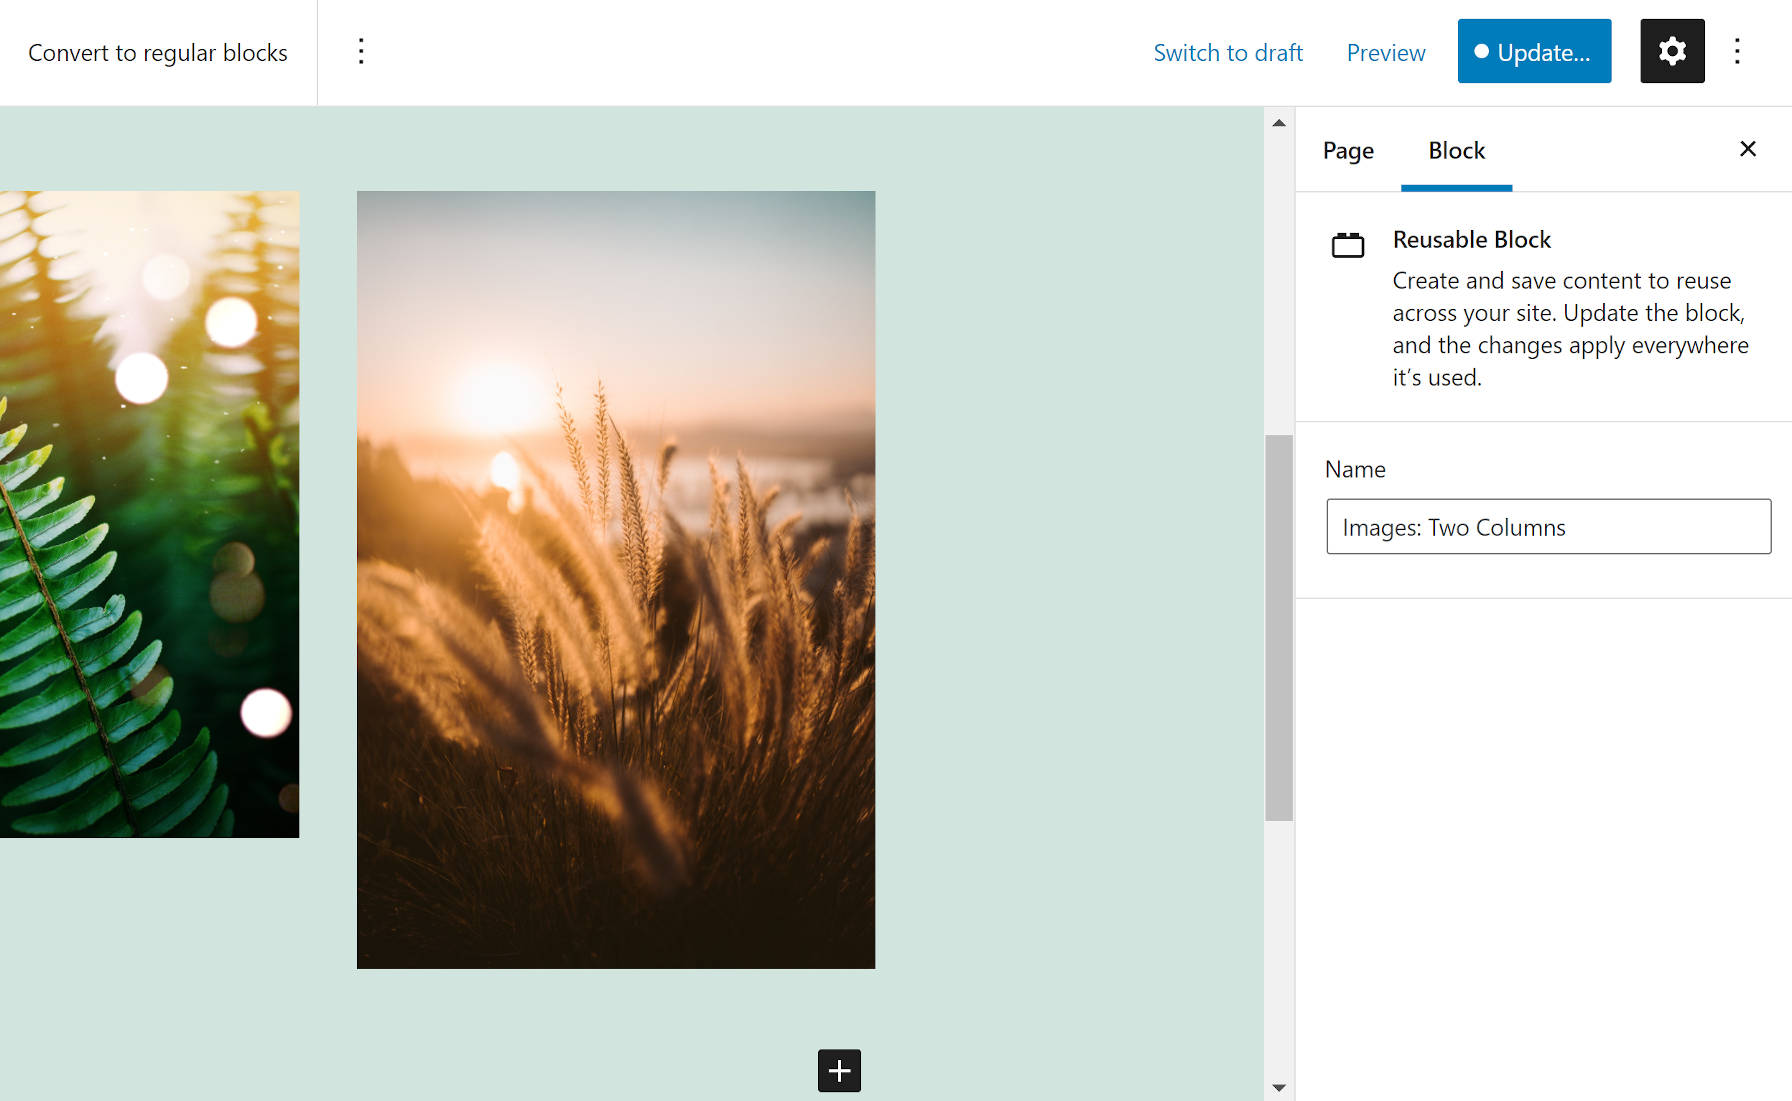 gutenberg-9-7-improves-user-experience-updates-reusable-blocks-and-brings-page-templates-to-fse-themes-1 Gutenberg 9.7 Improves User Experience, Updates Reusable Blocks, and Brings Page Templates to FSE Themes